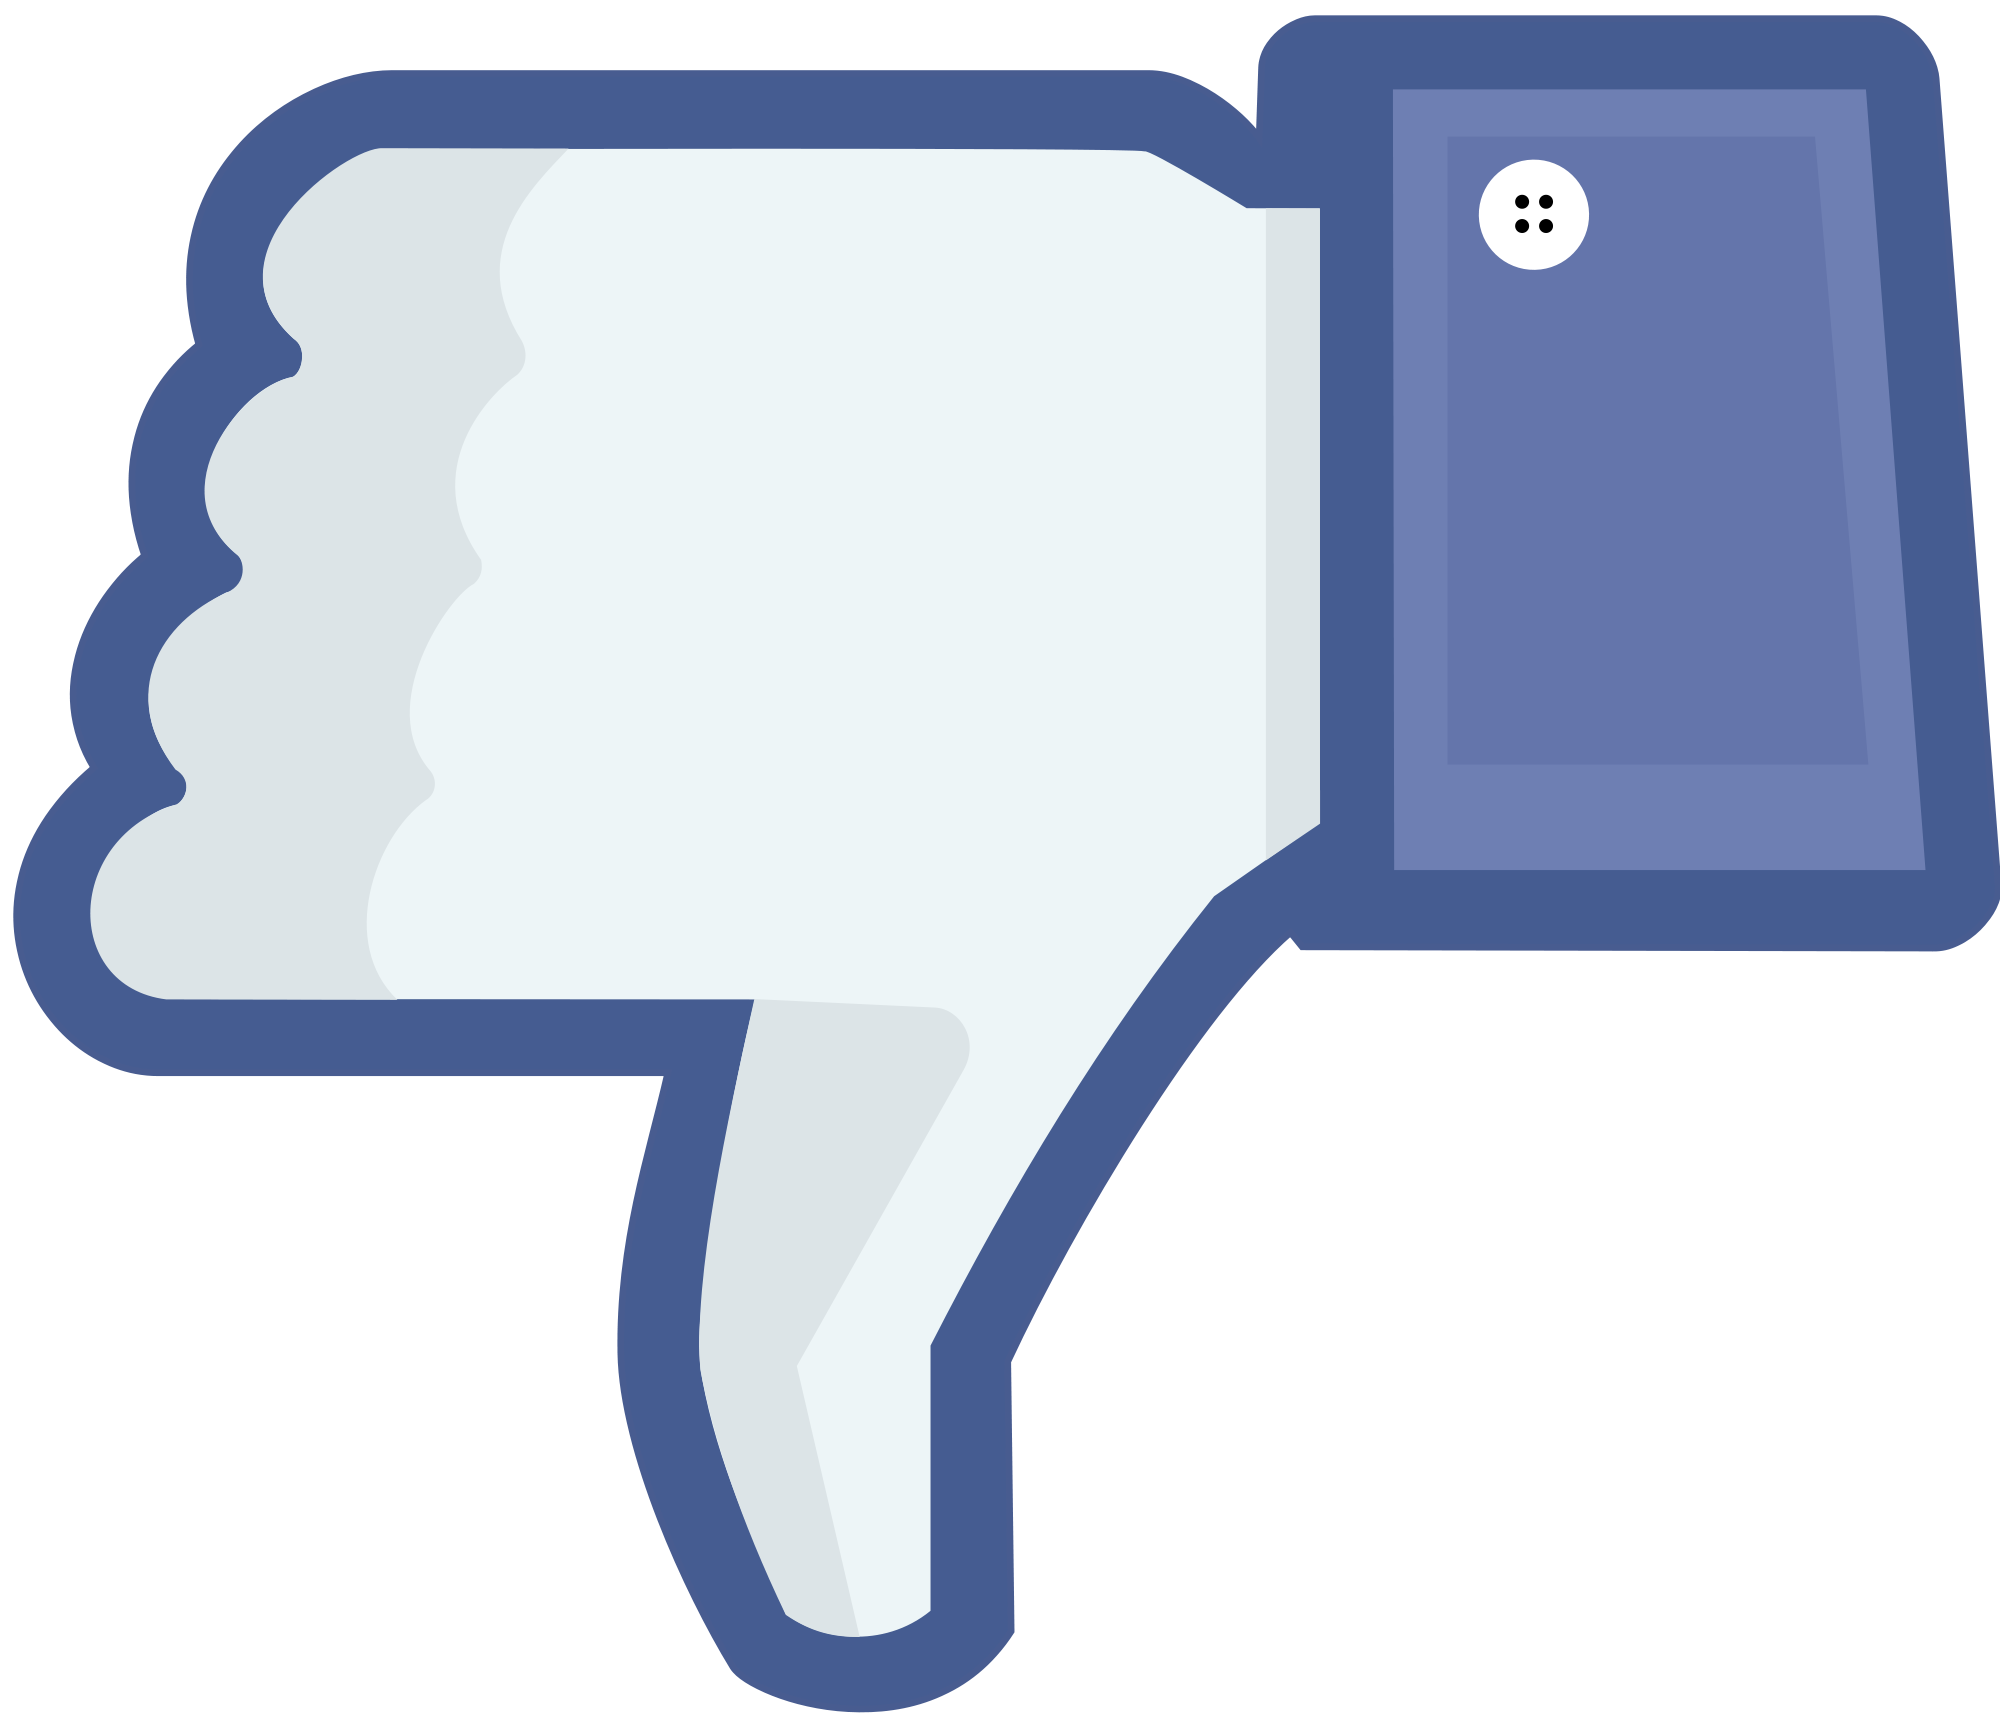 Facebook like button clipart picture black and white stock Facebook likes clipart - ClipartFest picture black and white stock